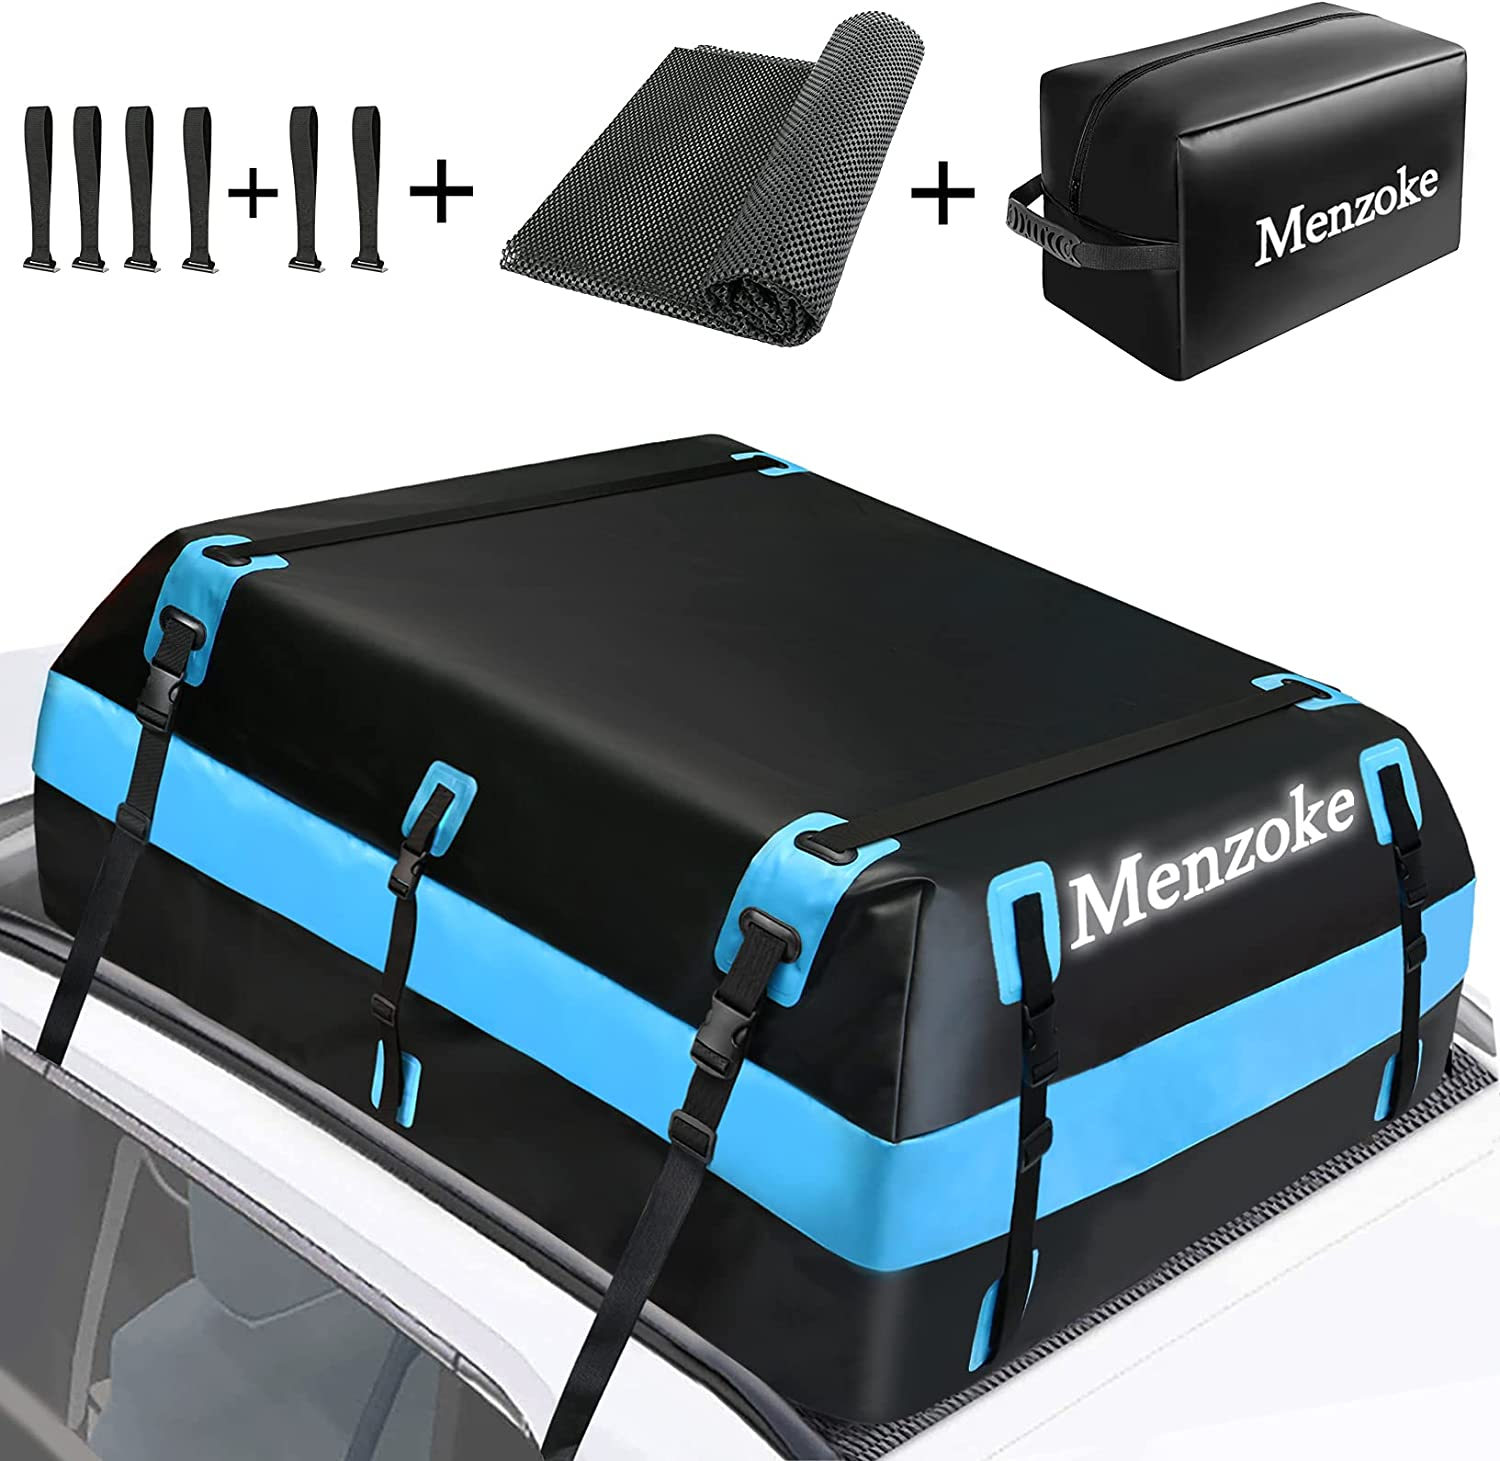 MENZOKE Rooftop Cargo Carrier,15 Cubic Feet Soft-Shell Waterproof Vehicle Cargo Carriers, Car Top Carrier Luggage Carrier with Storage Bag, Anti-Slip Mat for All Vehicle with/Without Rack: Automotive